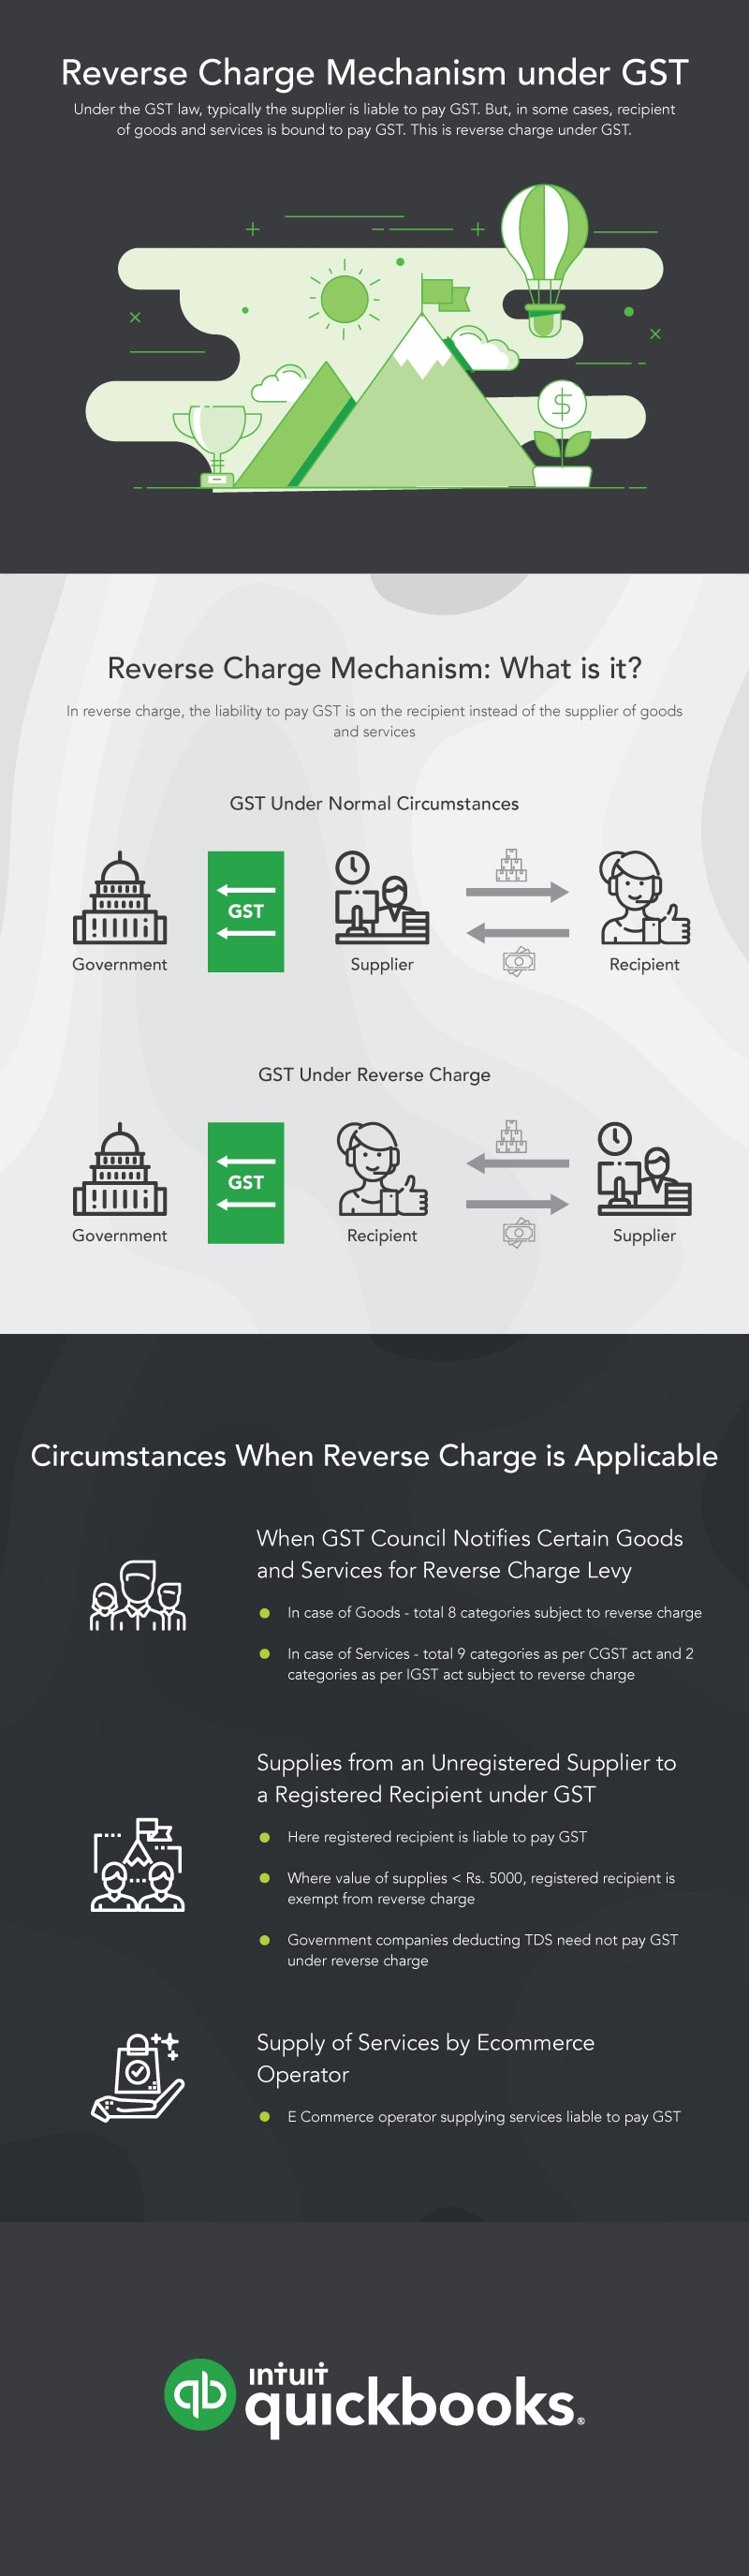 REVERSE CHARGE MECHANISM UNDER GST